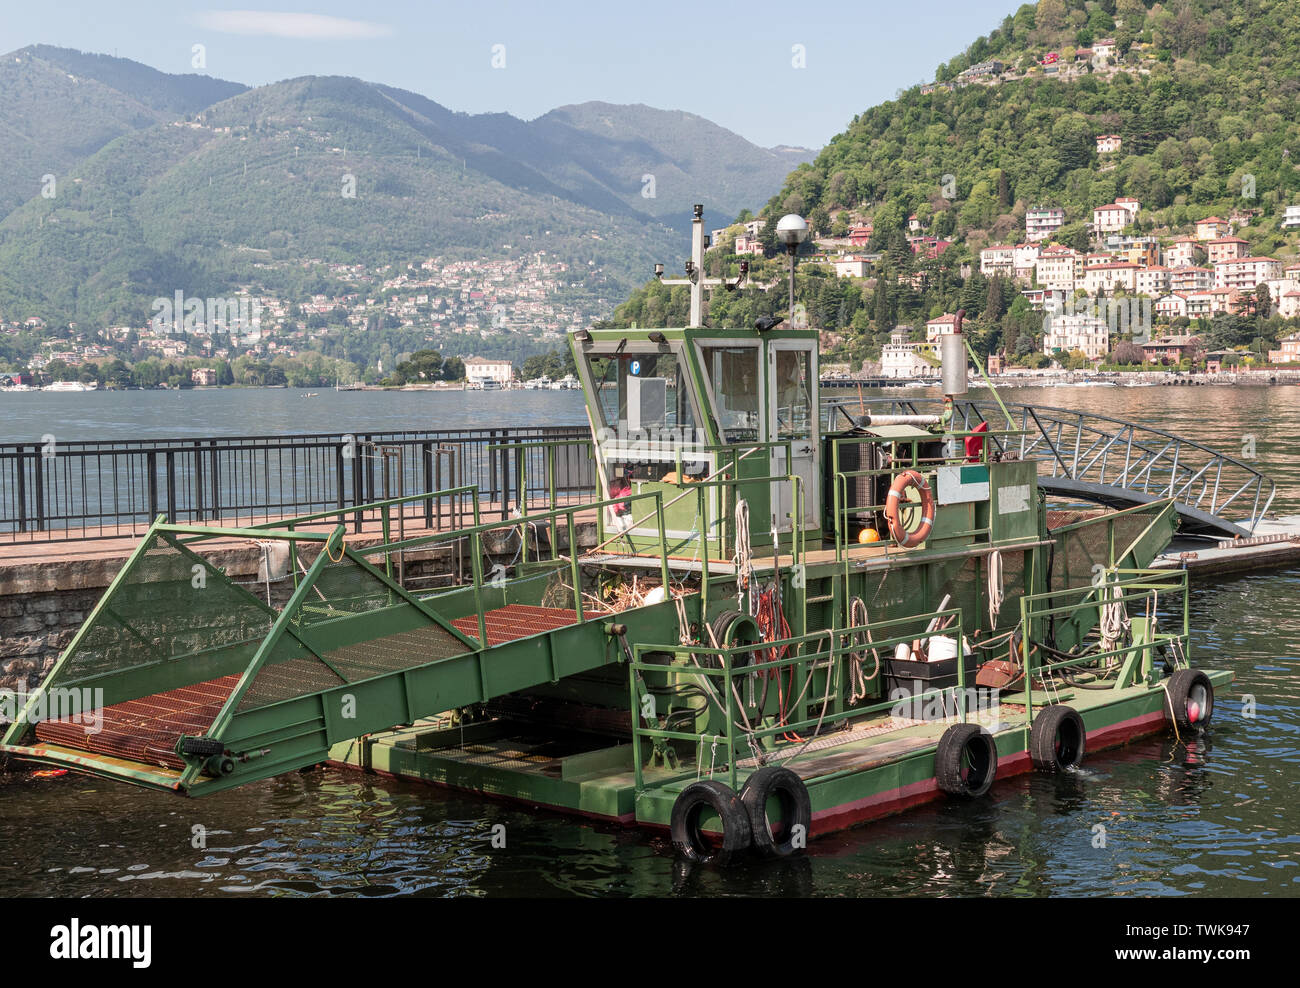 Como Lake - Italy. boat used for water cleaning and waste collection, moored in the port of Como - Stock Image